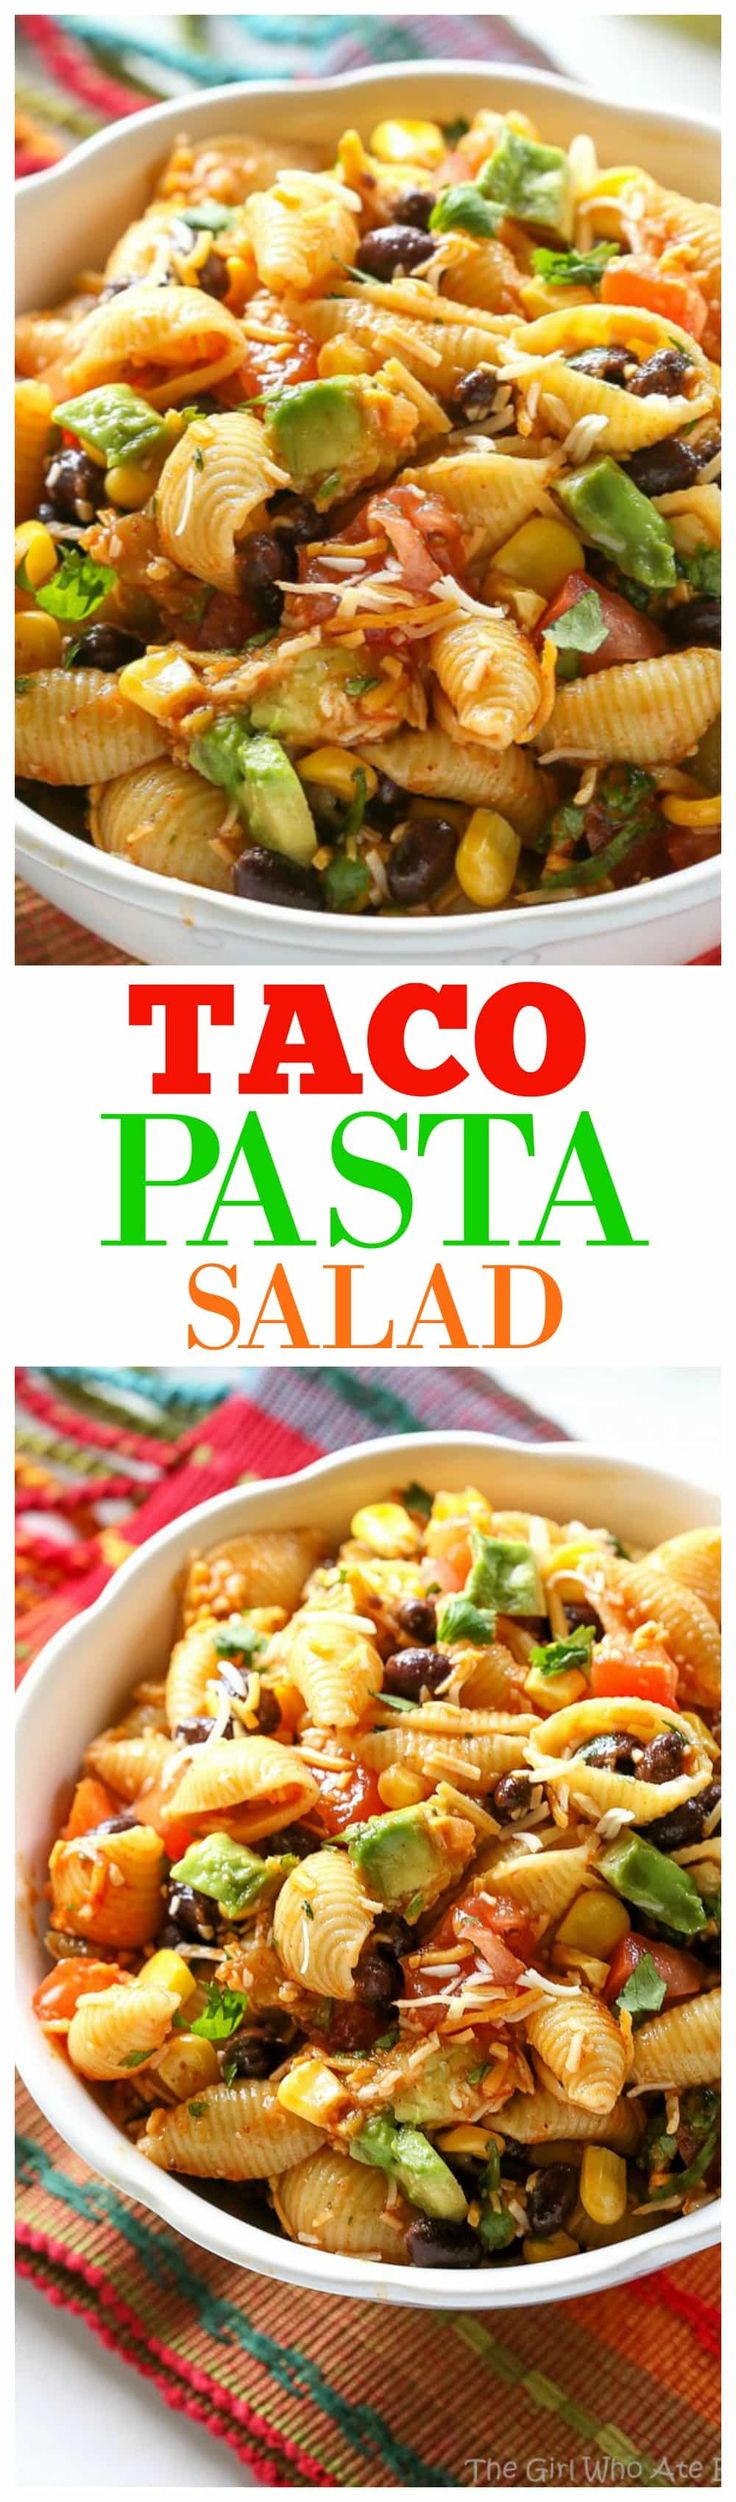 Taco Pasta Salad - black beans, corn, cilantro, and tomatoes. the-girl-who-ate-everything.com